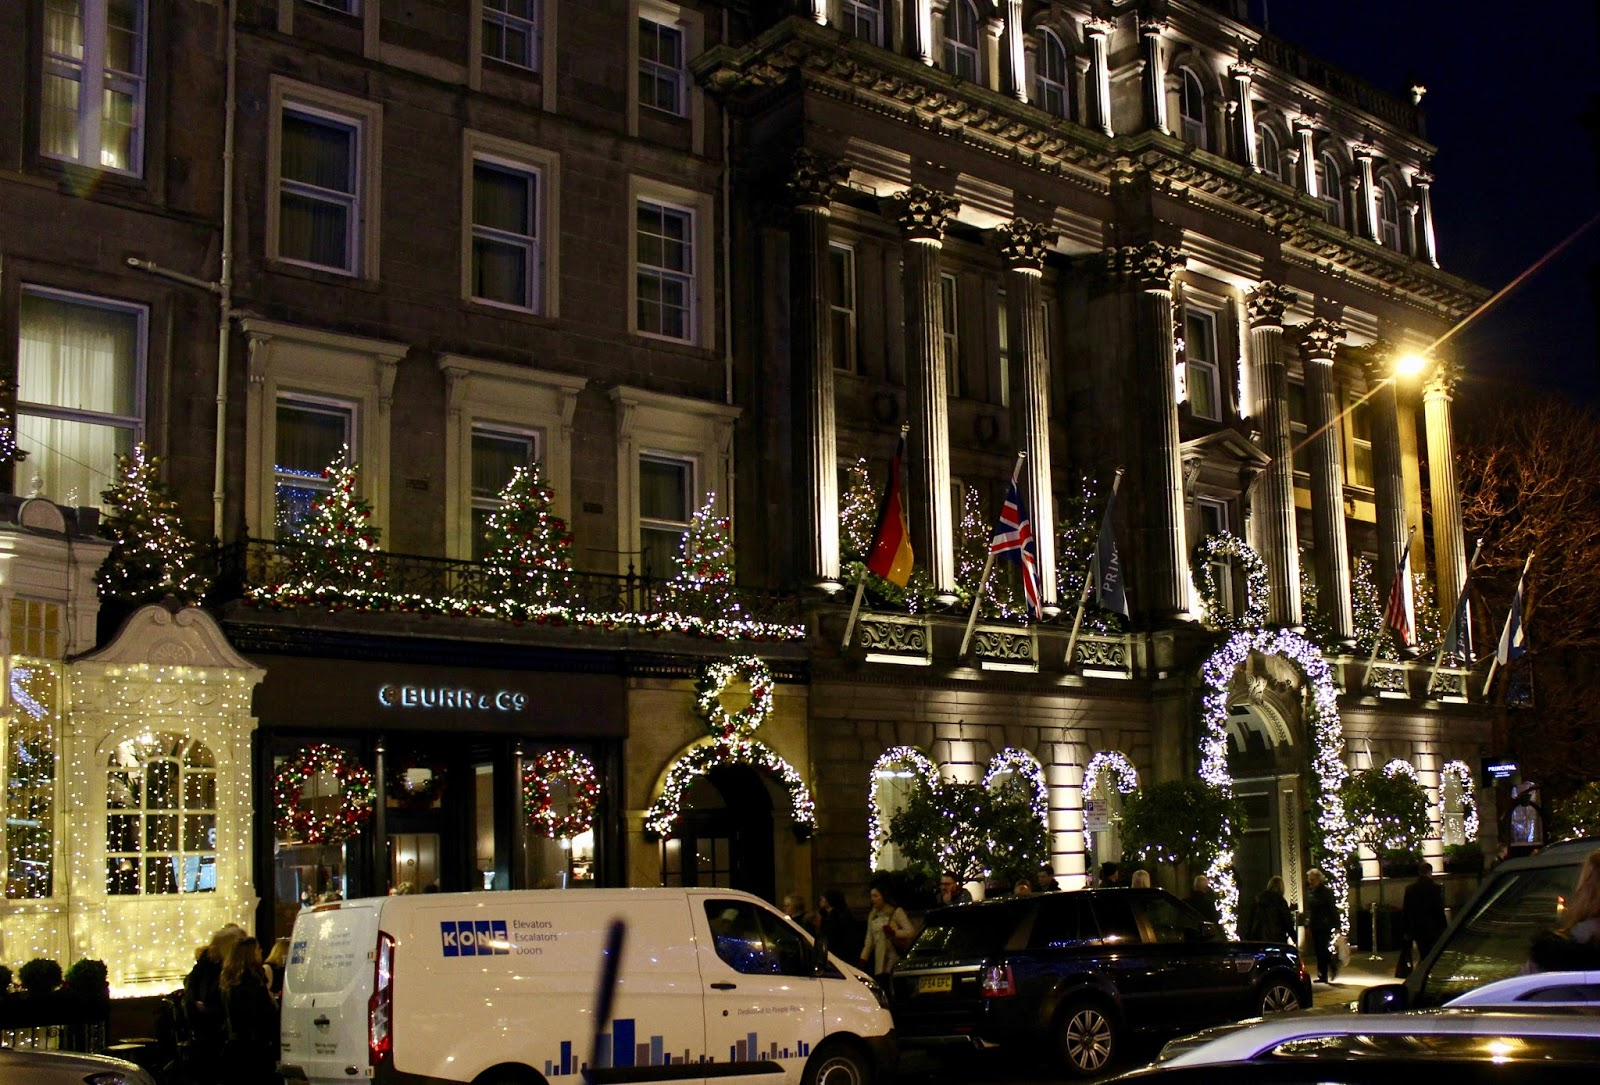 Christmas on George Street in Edinburgh